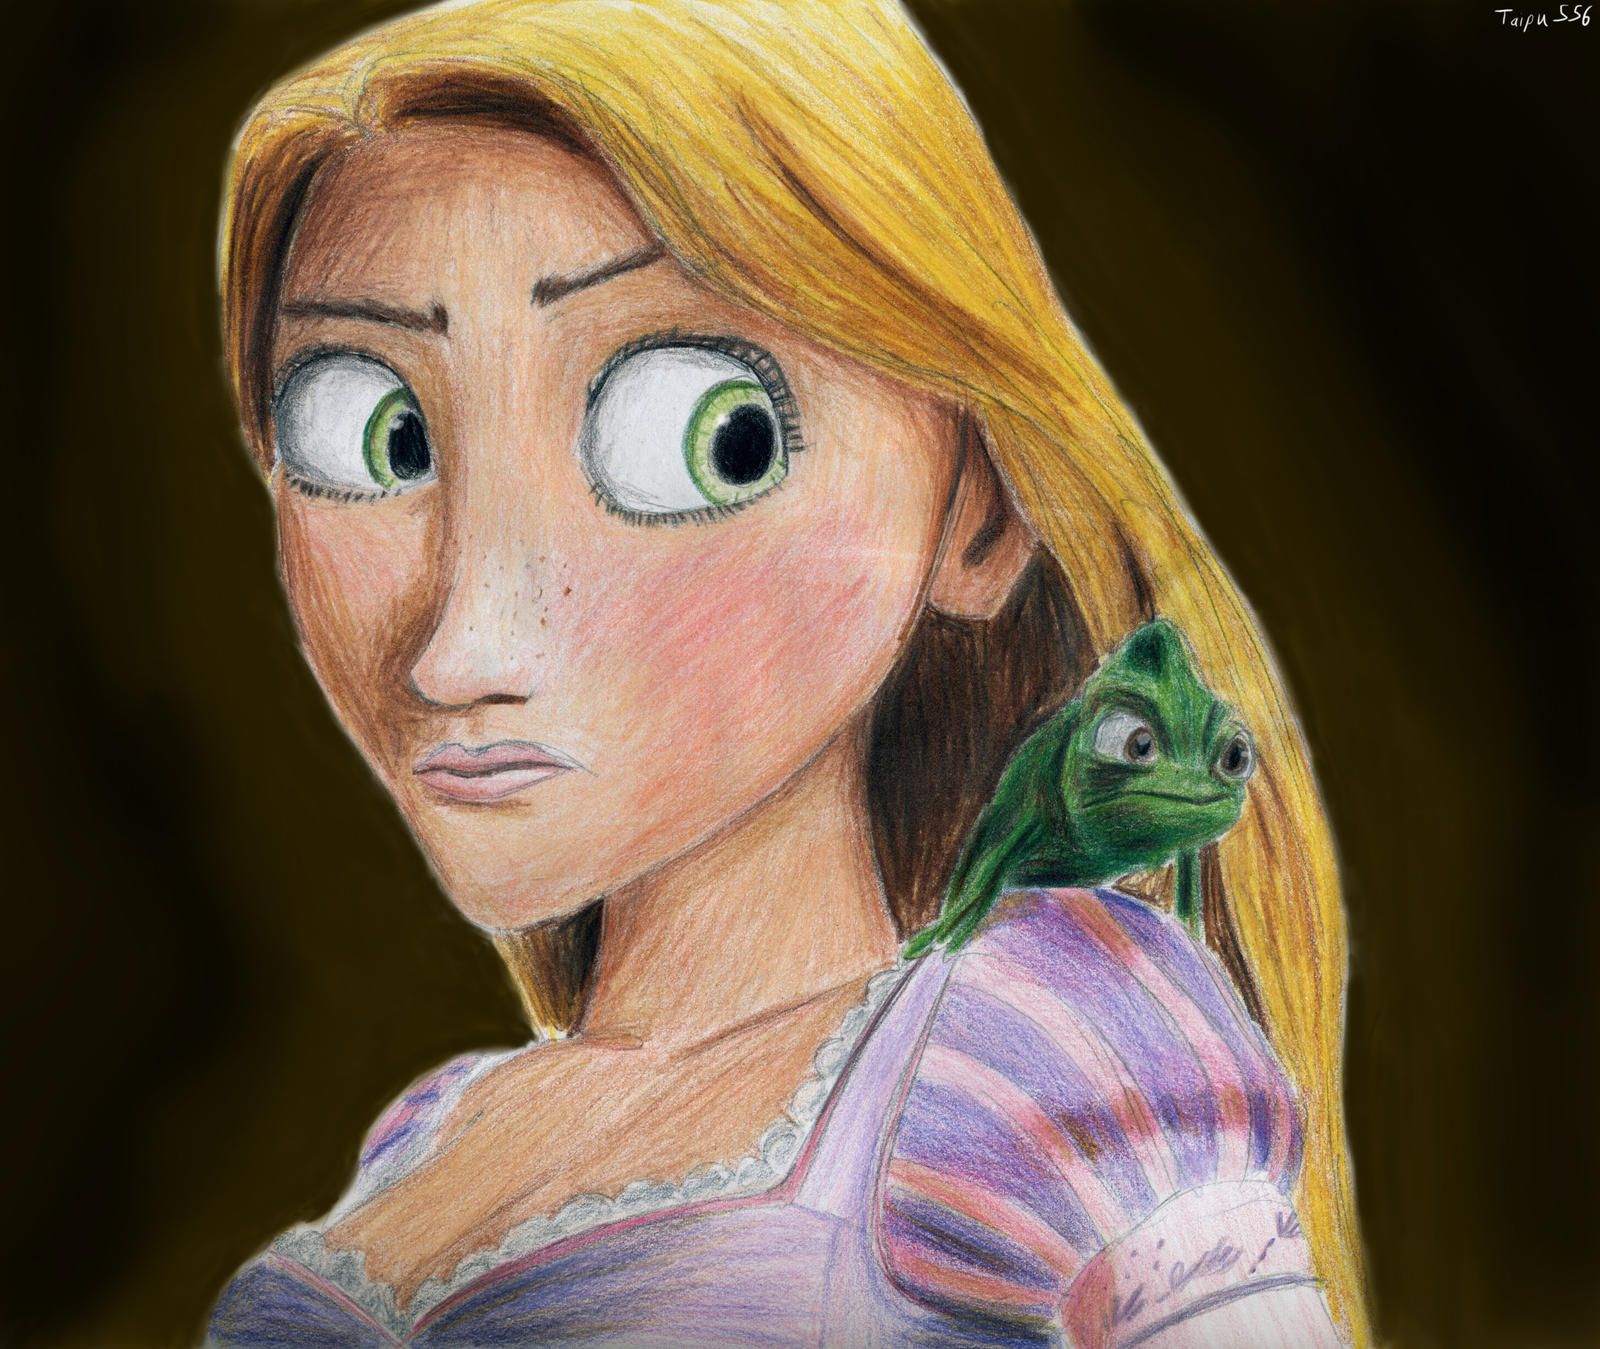 Rapunzel and Pascal by Taipu556 on DeviantArt